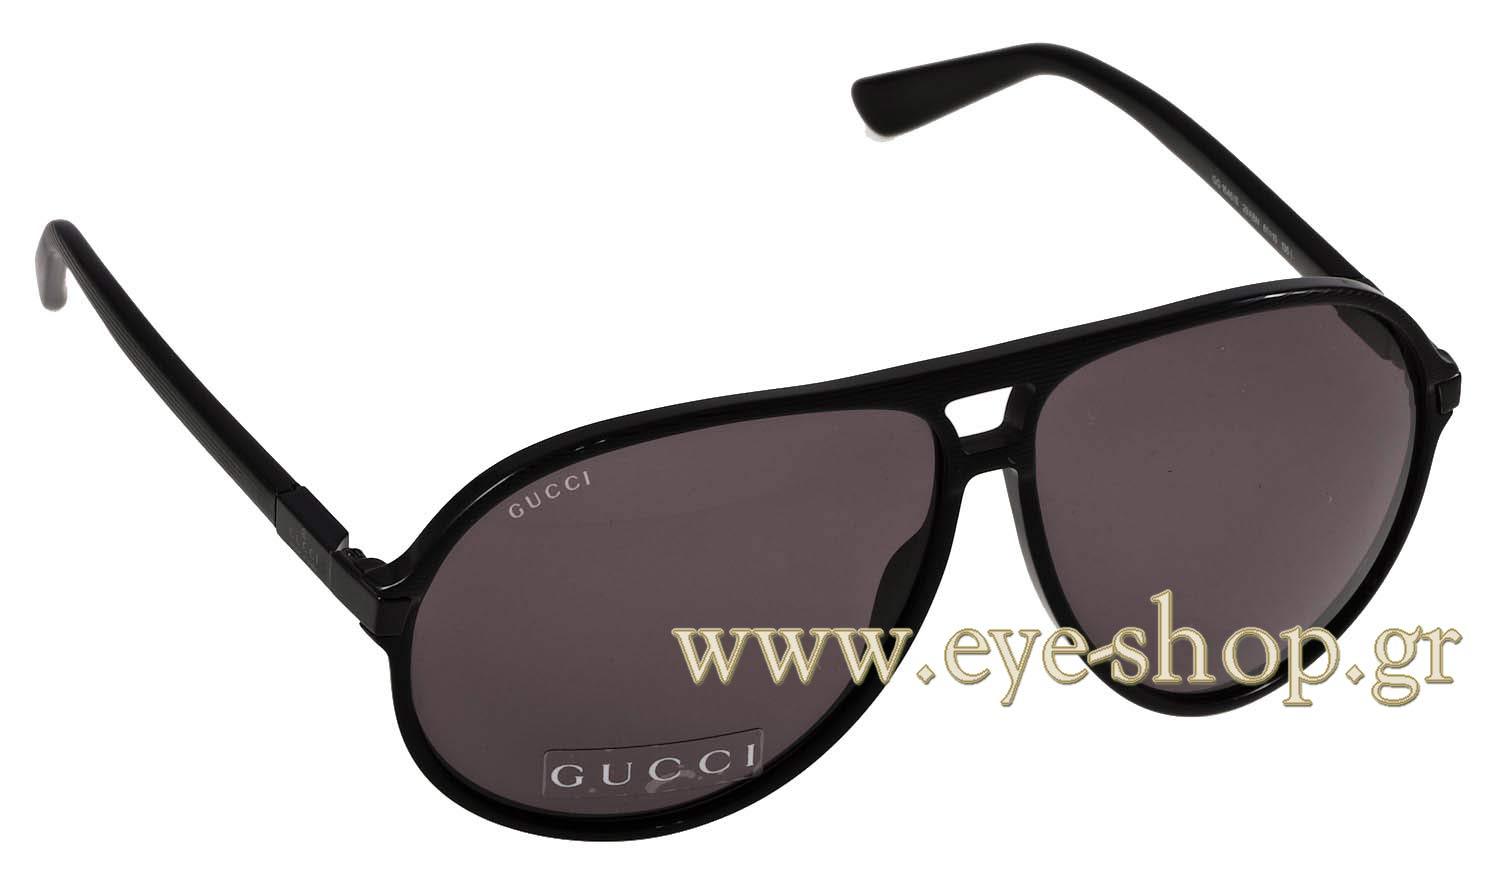 Gucci Eyeglass Frame Parts : GUCCI EYE GLASSES PARTS Glass Eye